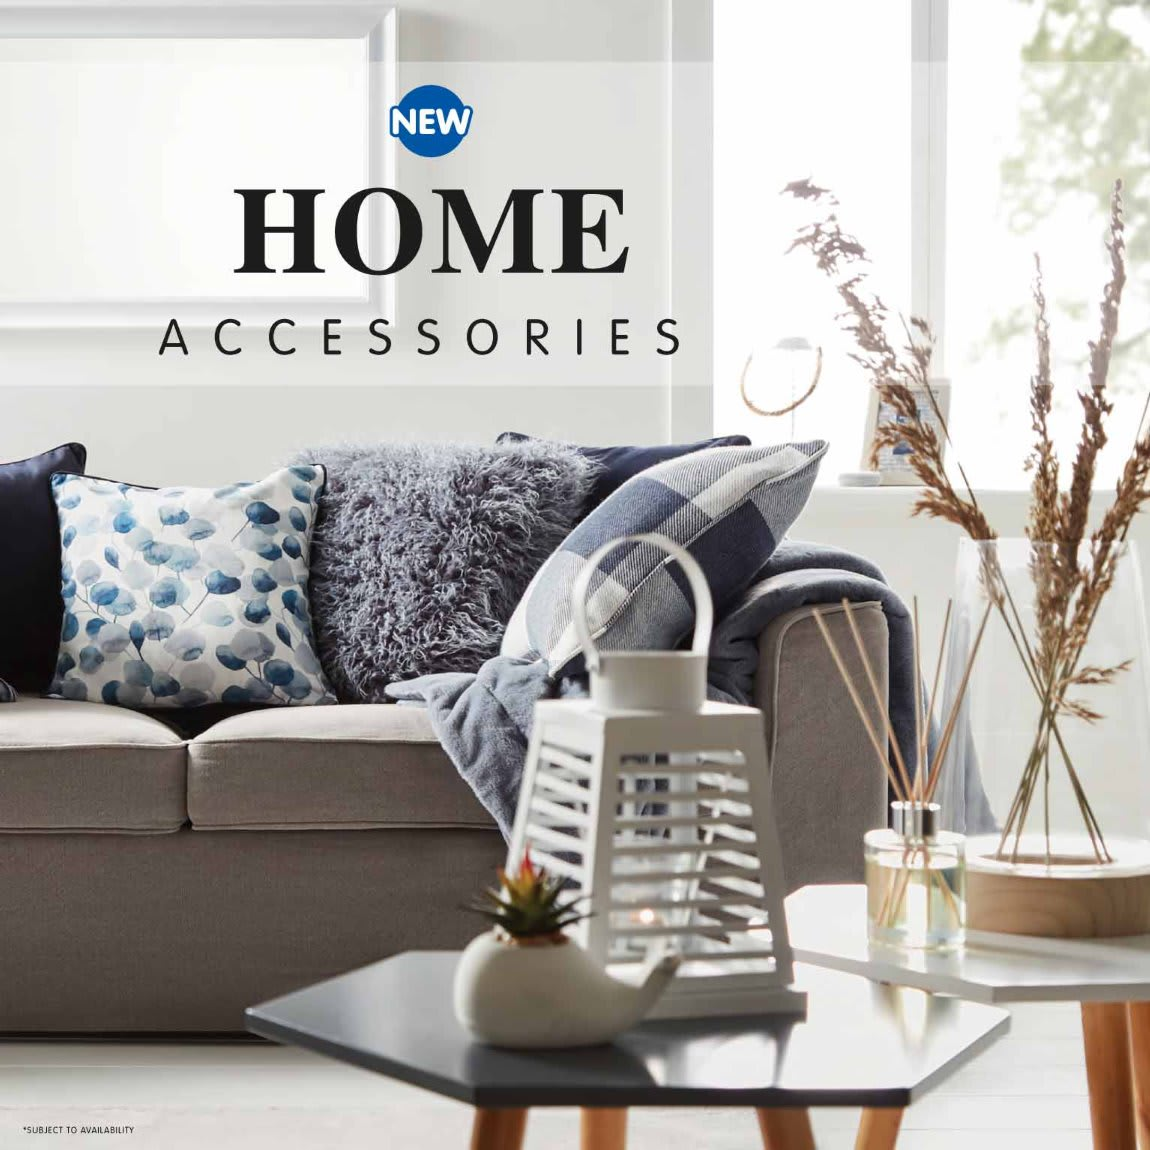 New Home Accessories in store at B&M.